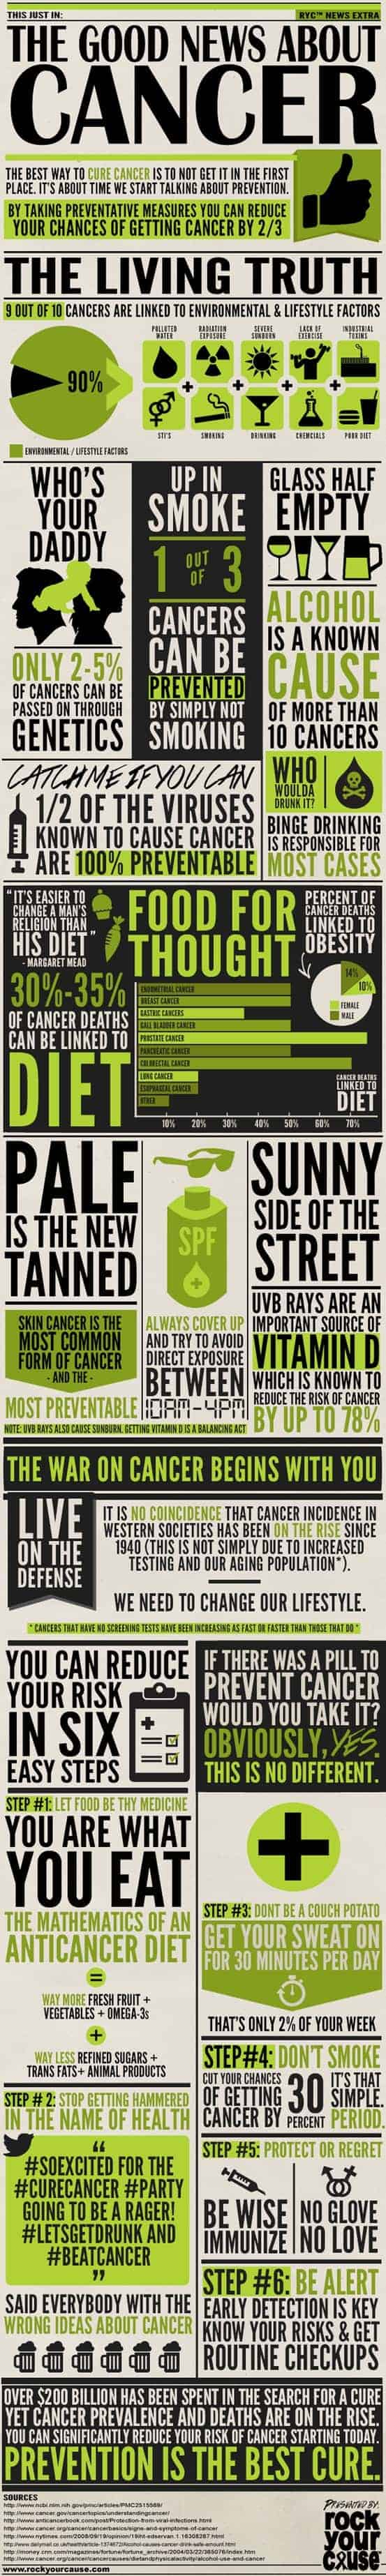 Good News About Cancer Infographic